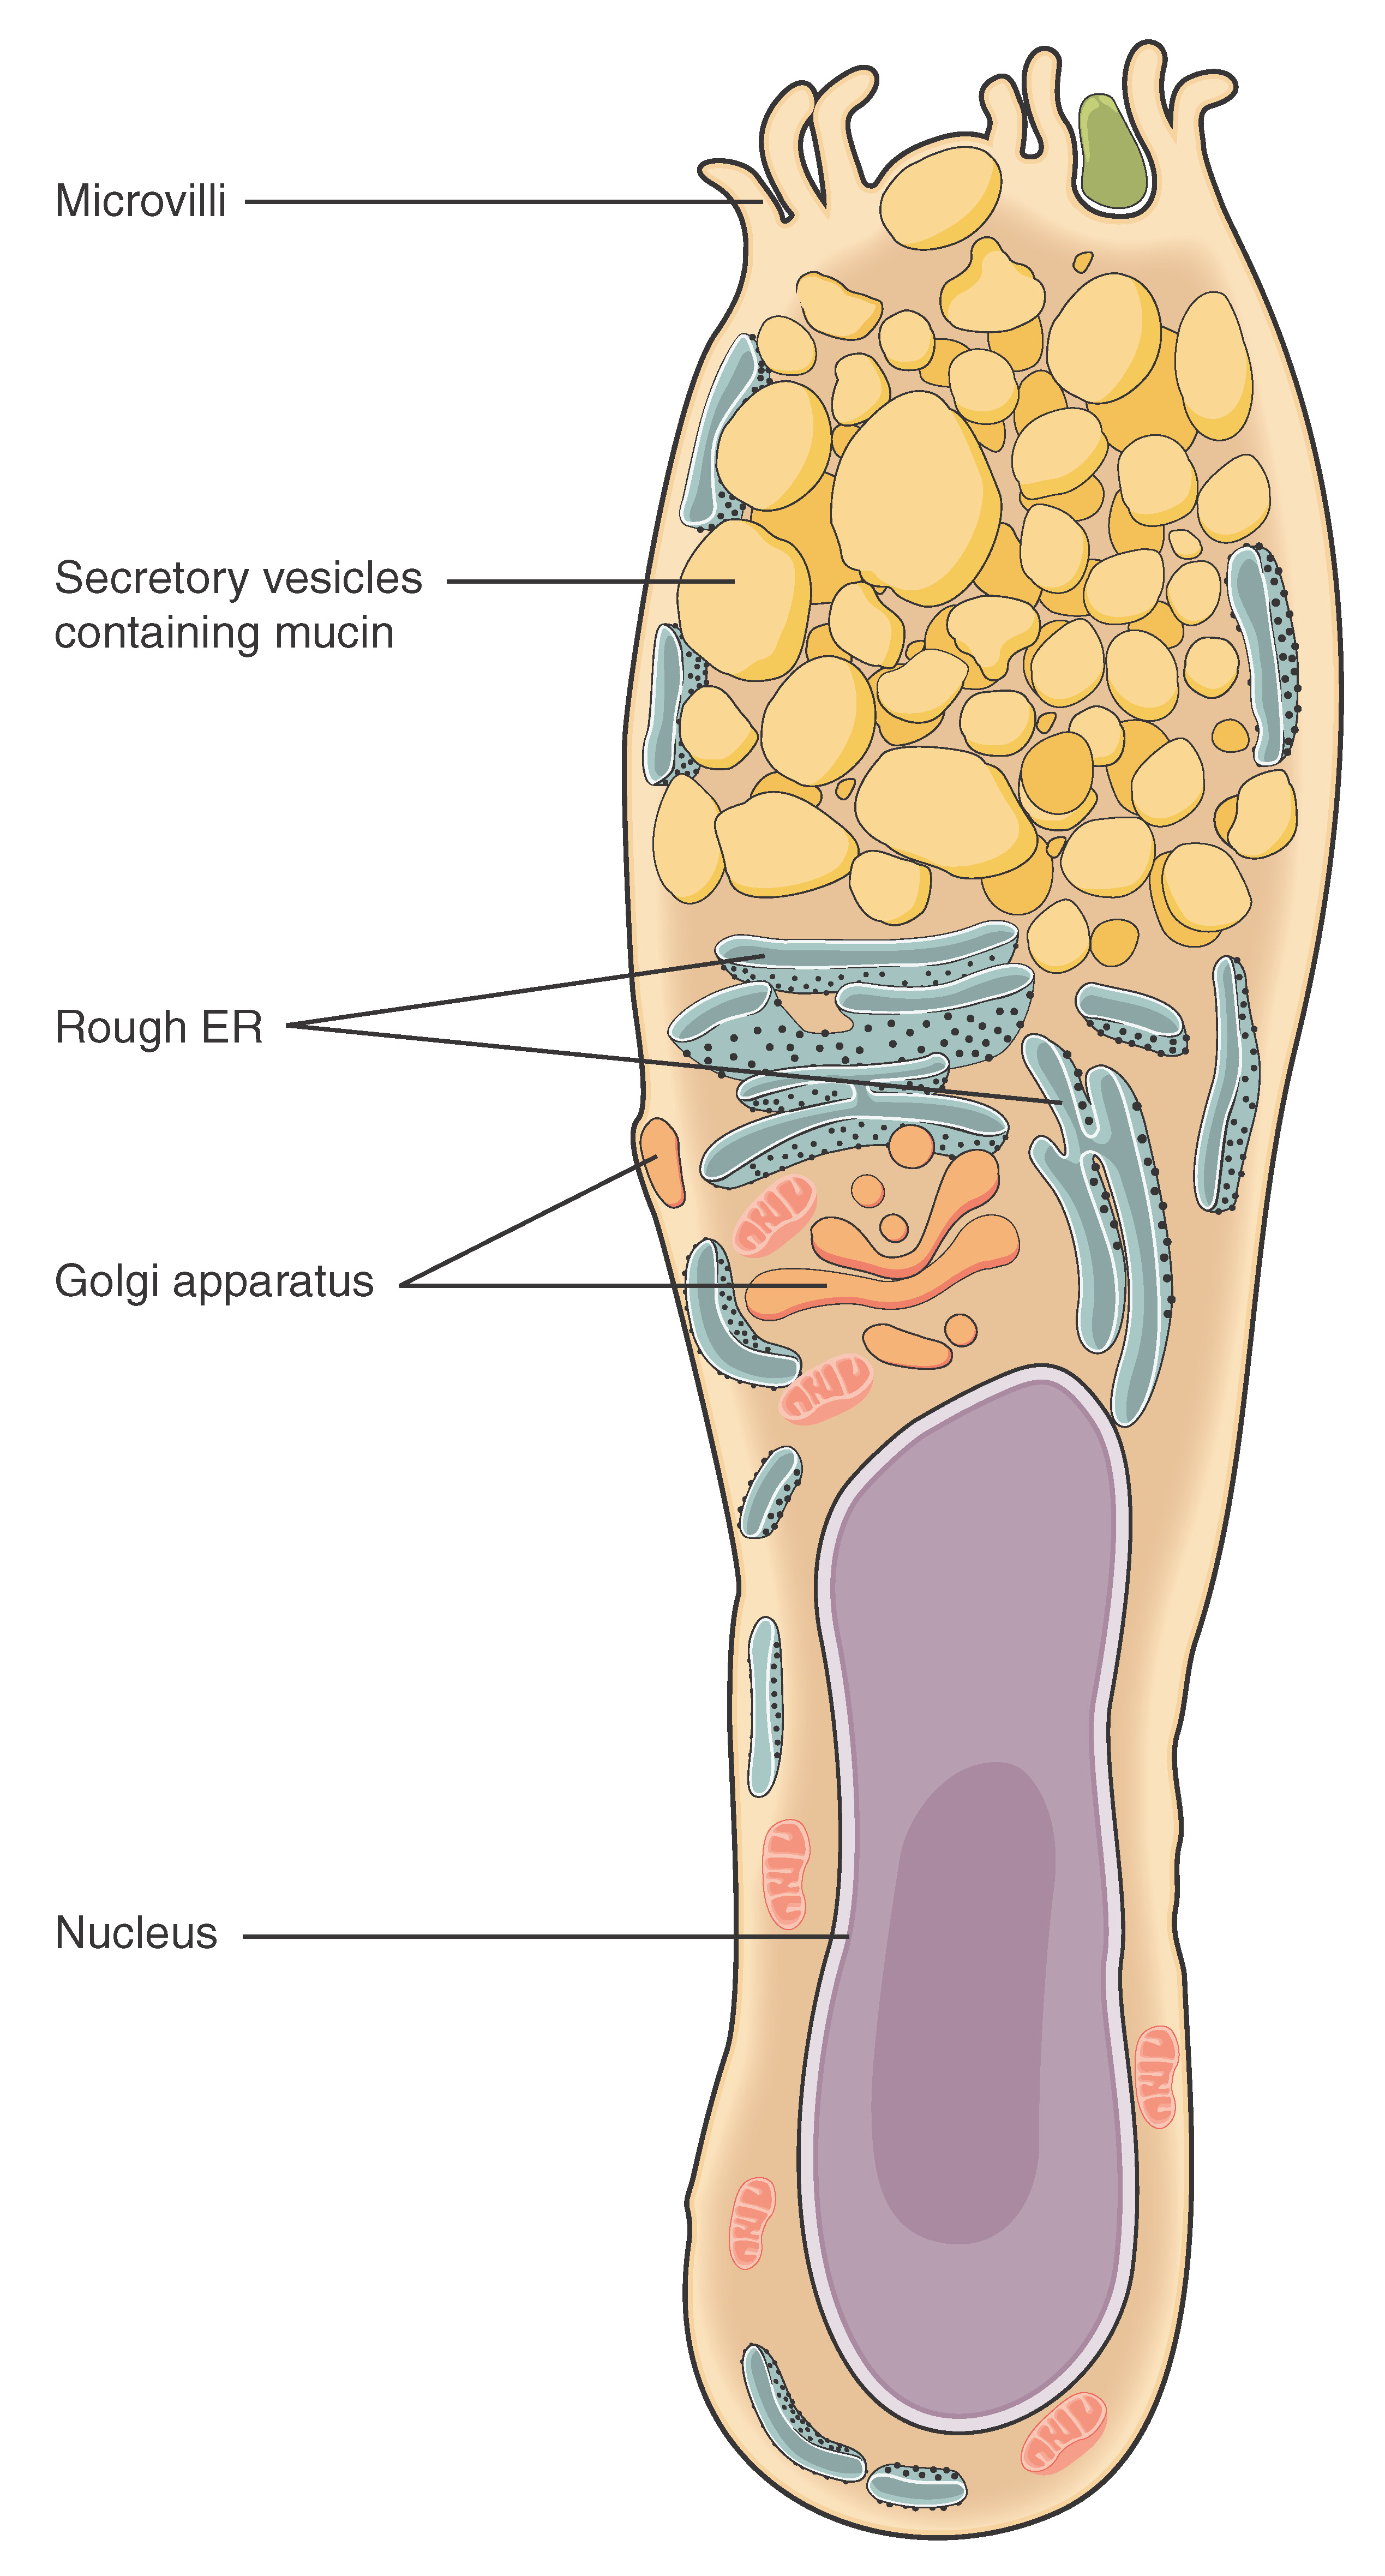 file 404 goblet cell new jpg wikimedia commons rh commons wikimedia org Animal Cell Diagram Human Cell Diagram Labeled